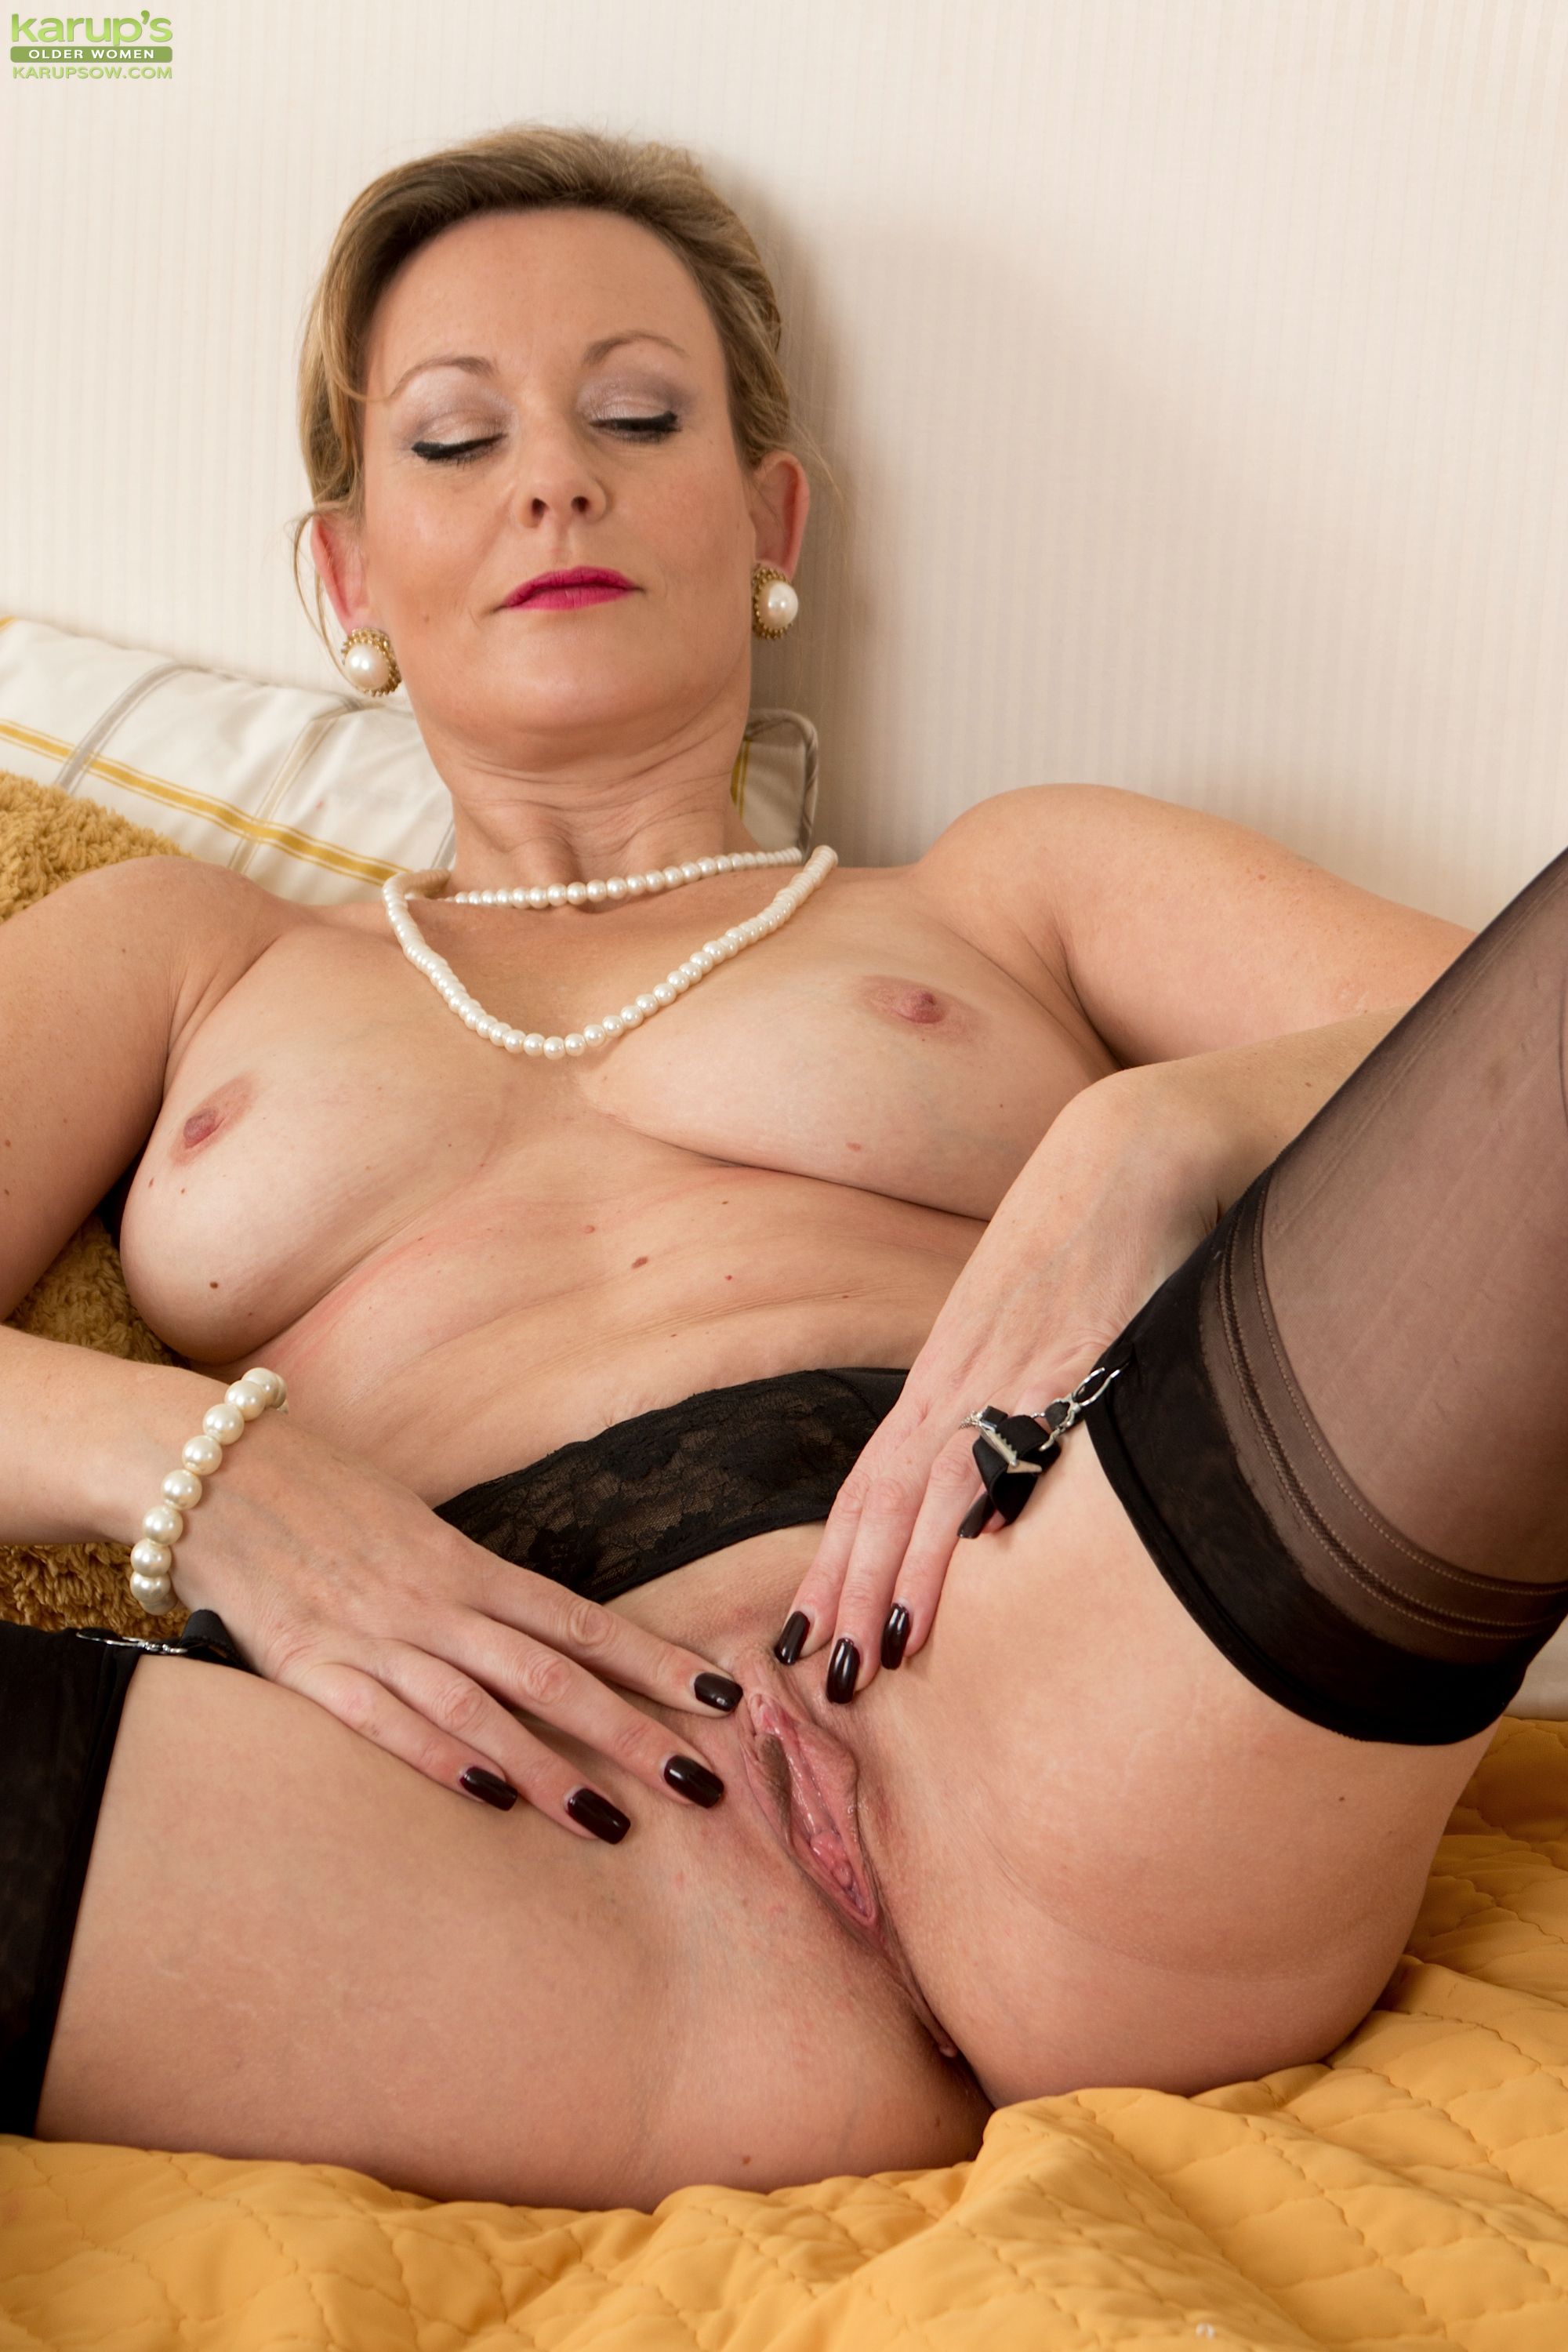 Mature Sex Pictures - Hot Categories